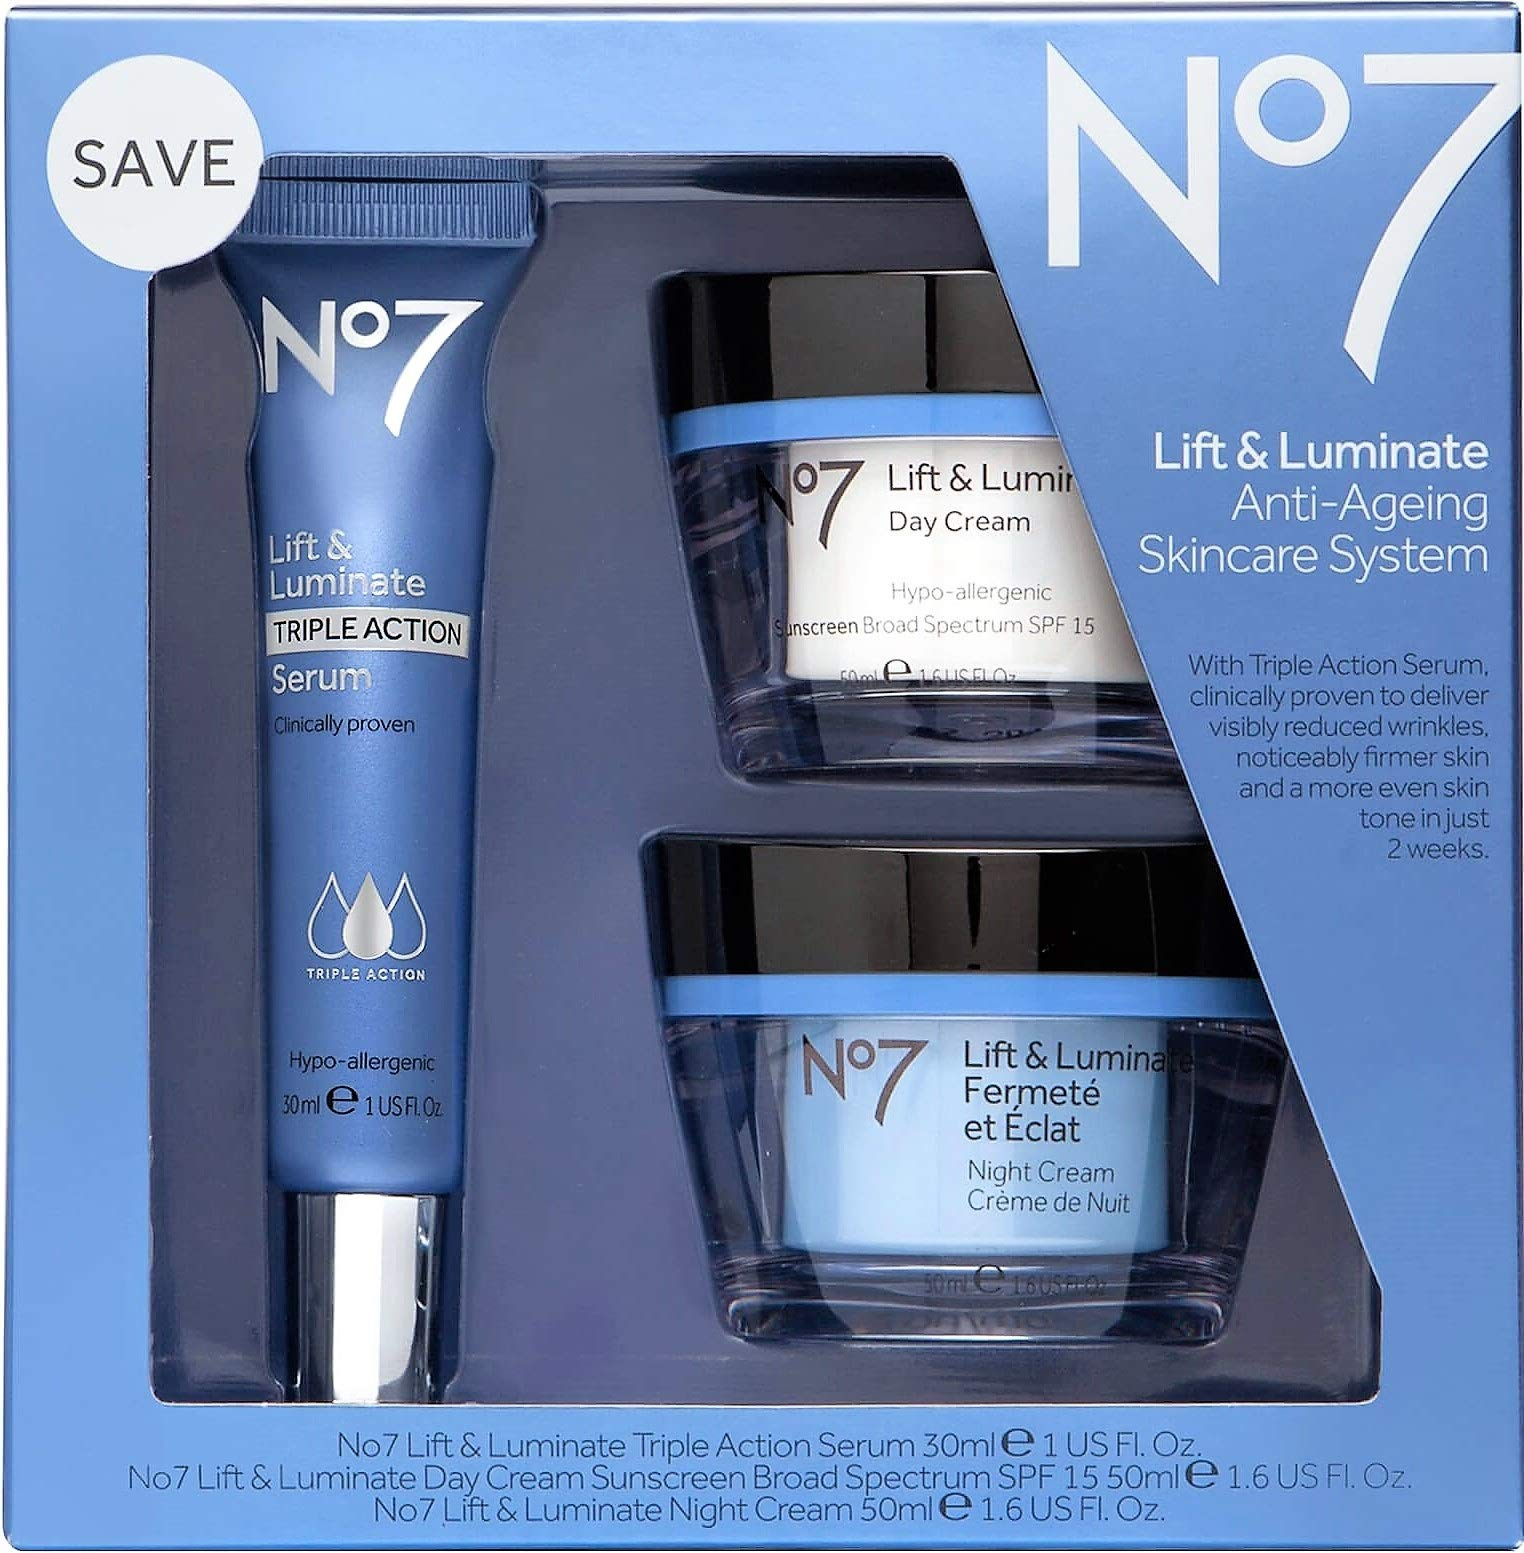 No7 Lift & Luminate Triple Action Skincare System by No. 7